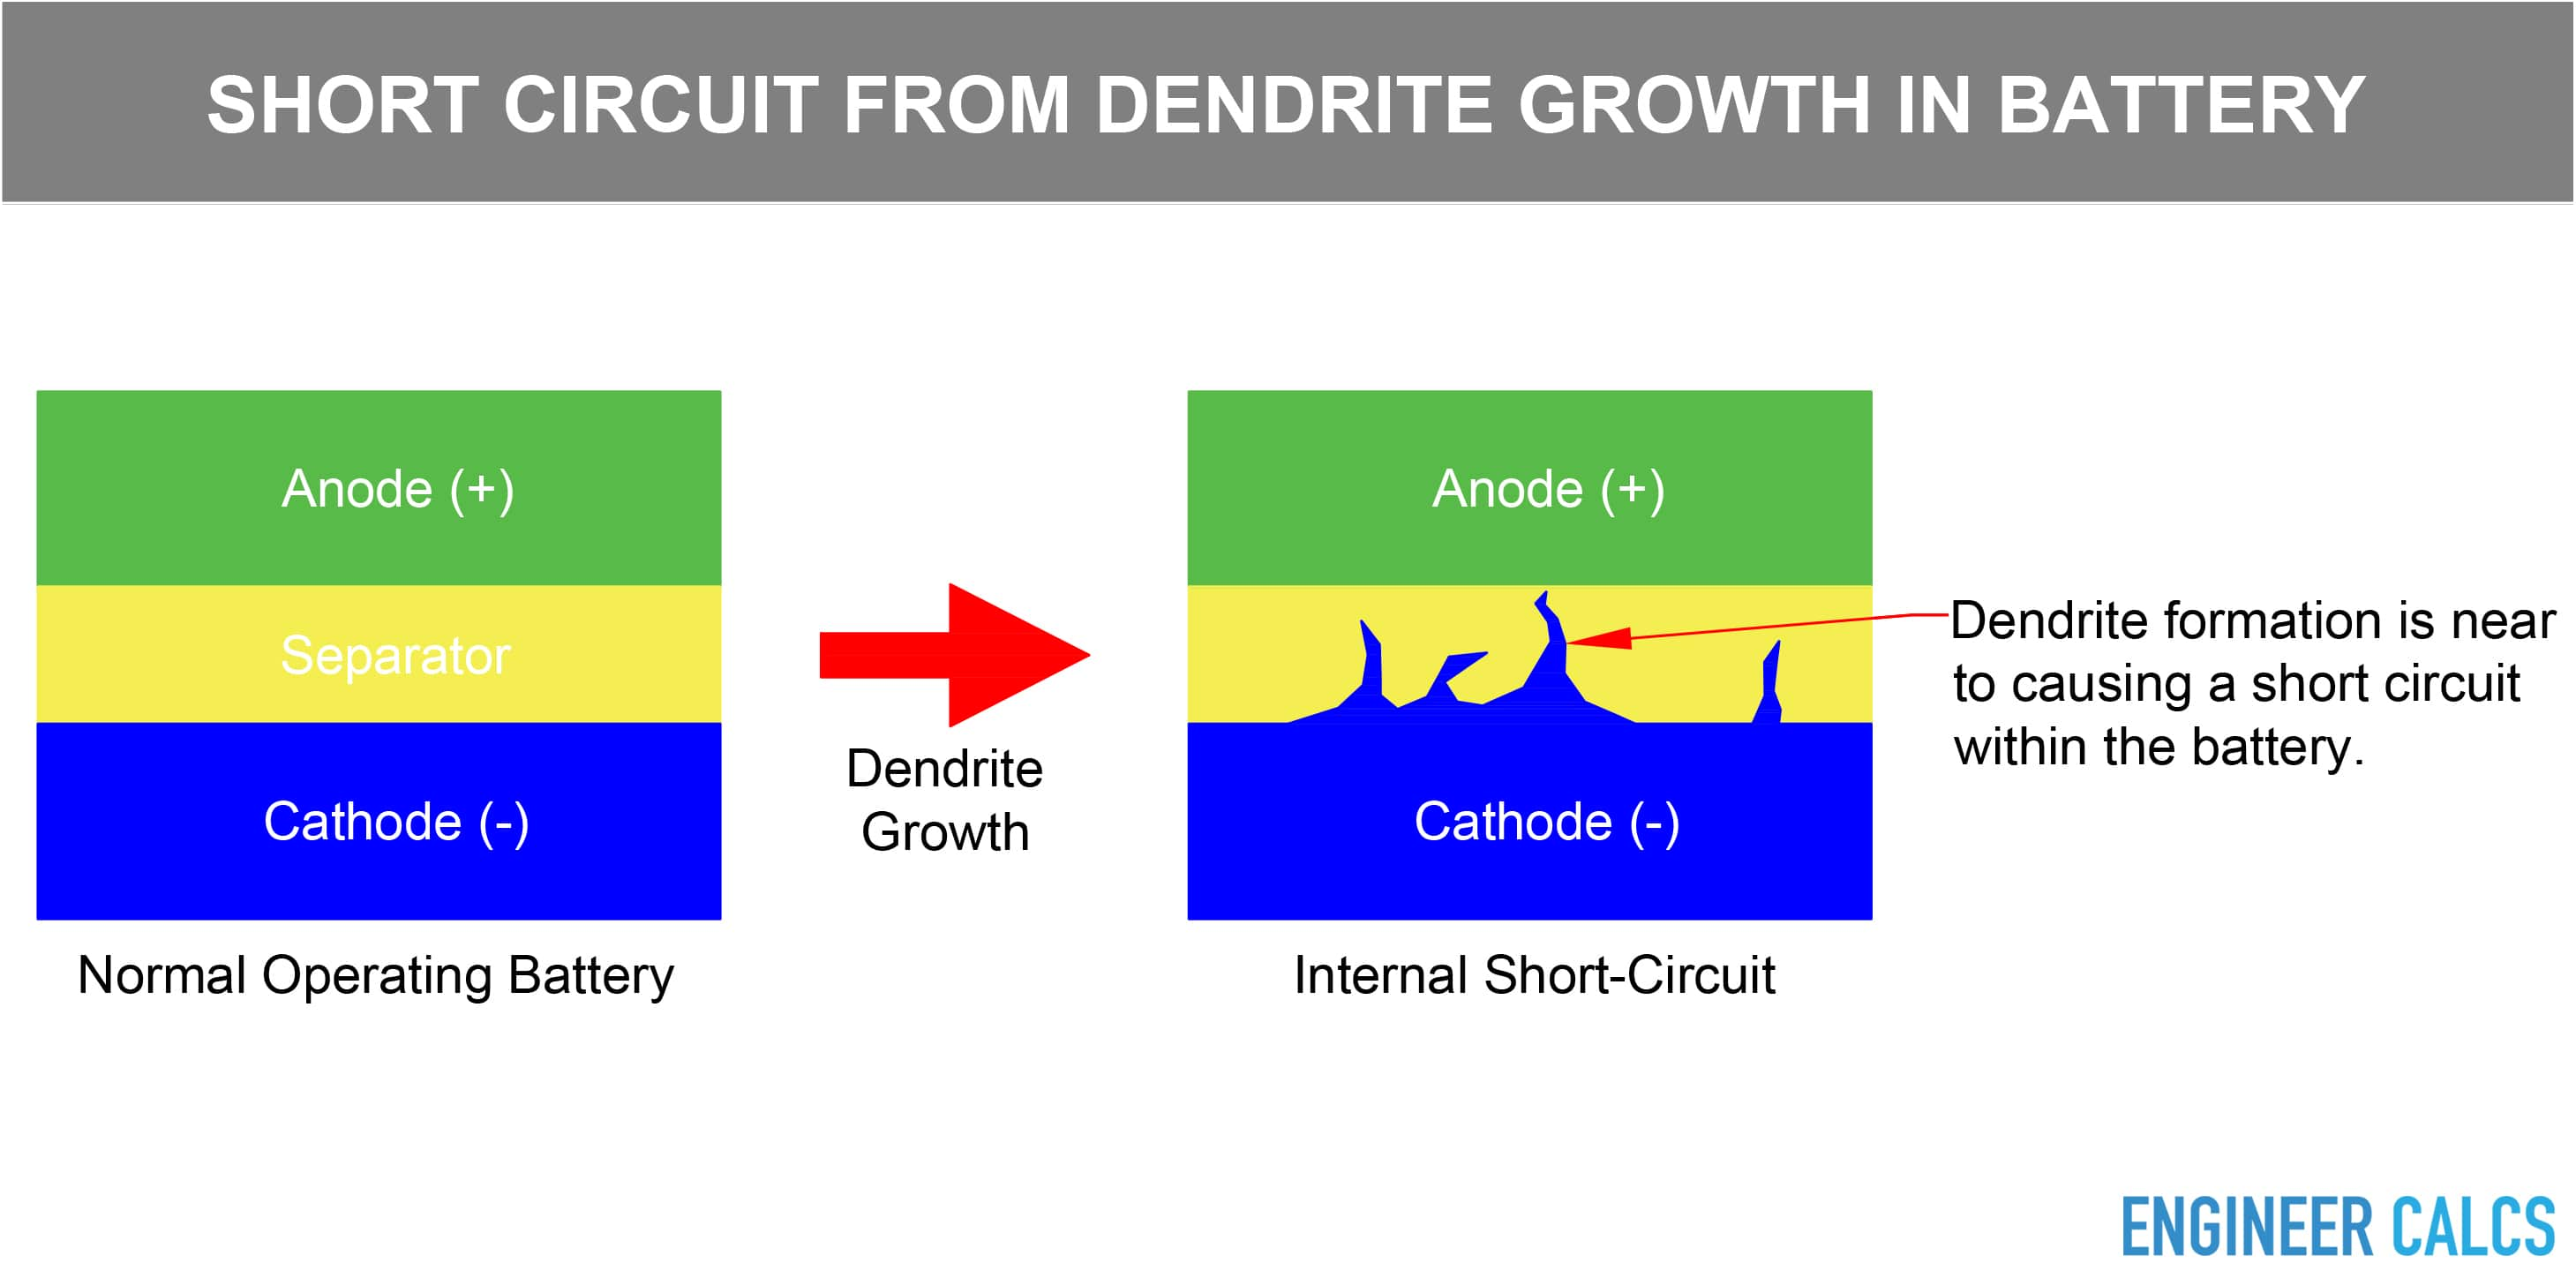 Short circuit from dendrite growth in battery